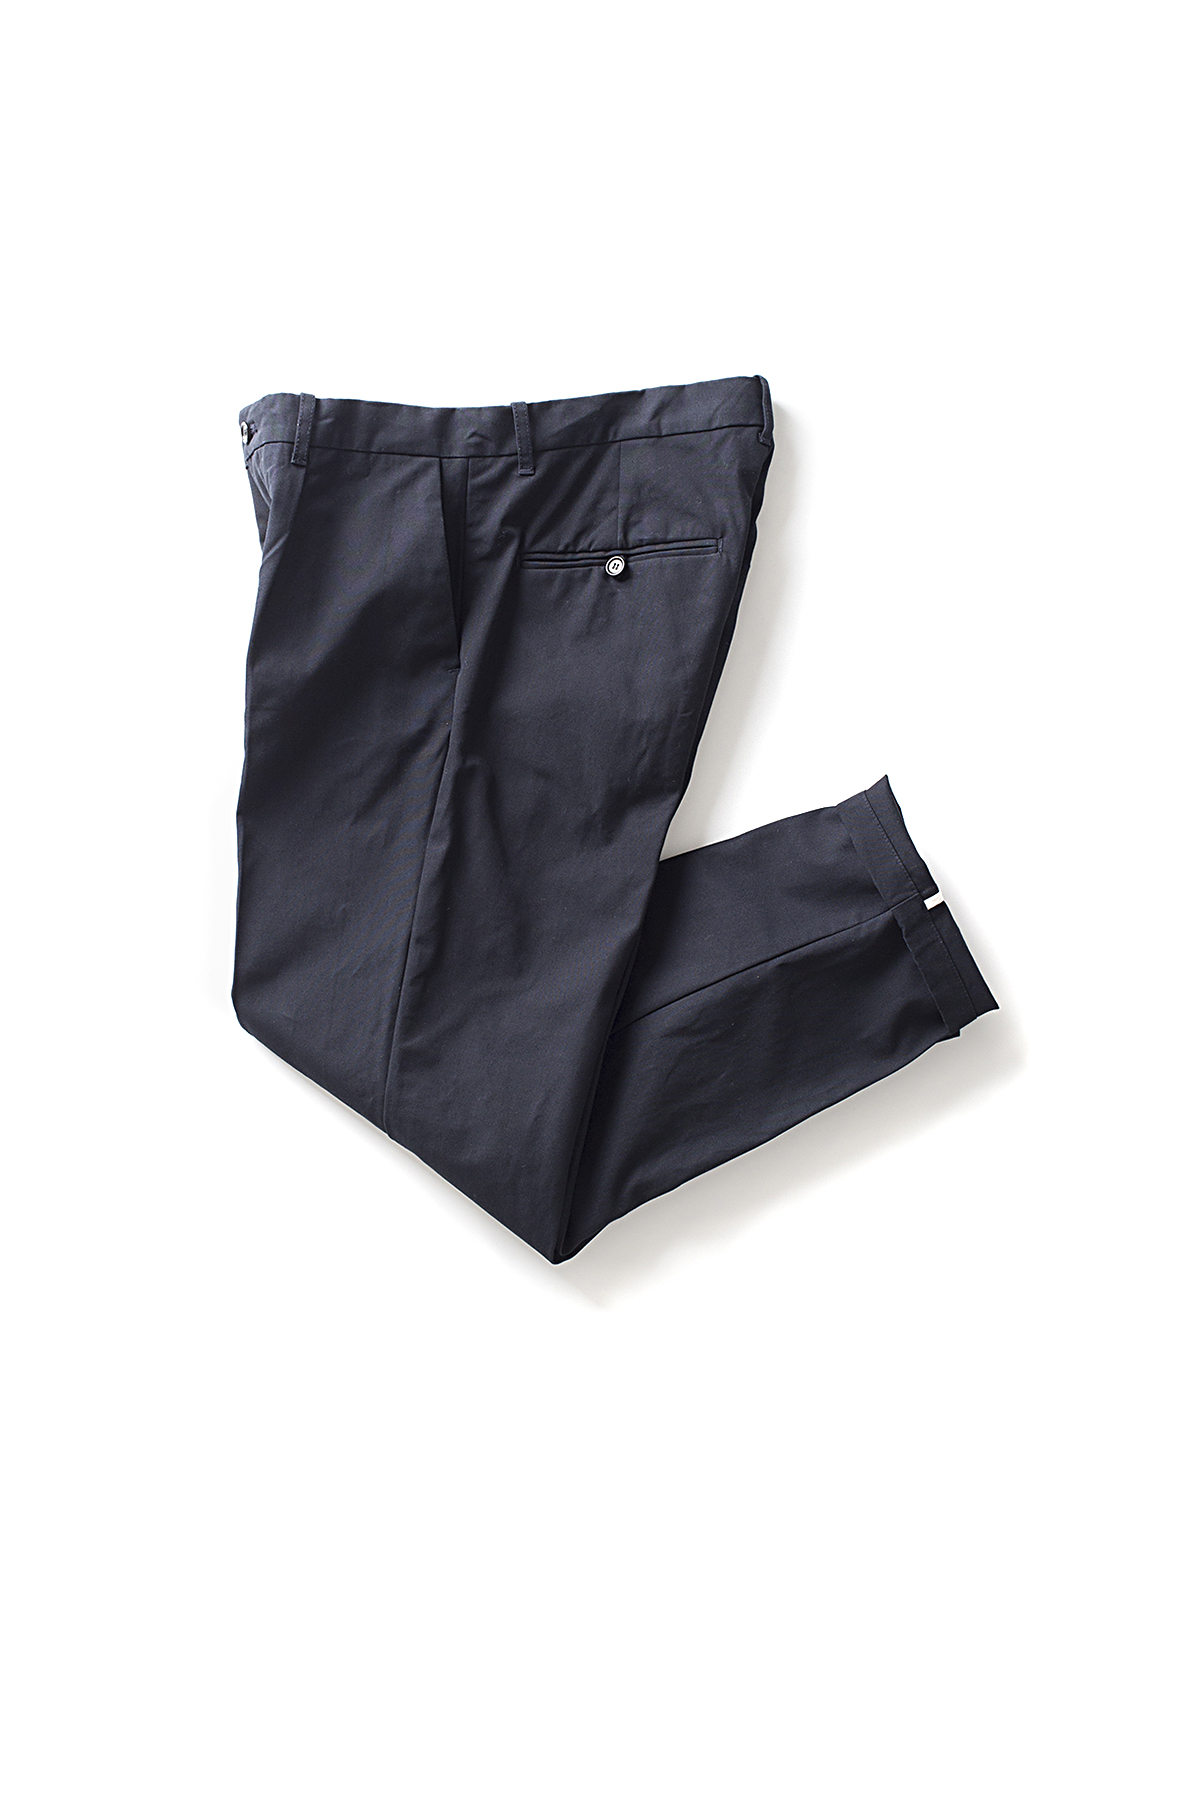 Still By Hand : Hard Canvas Pants (Navy)